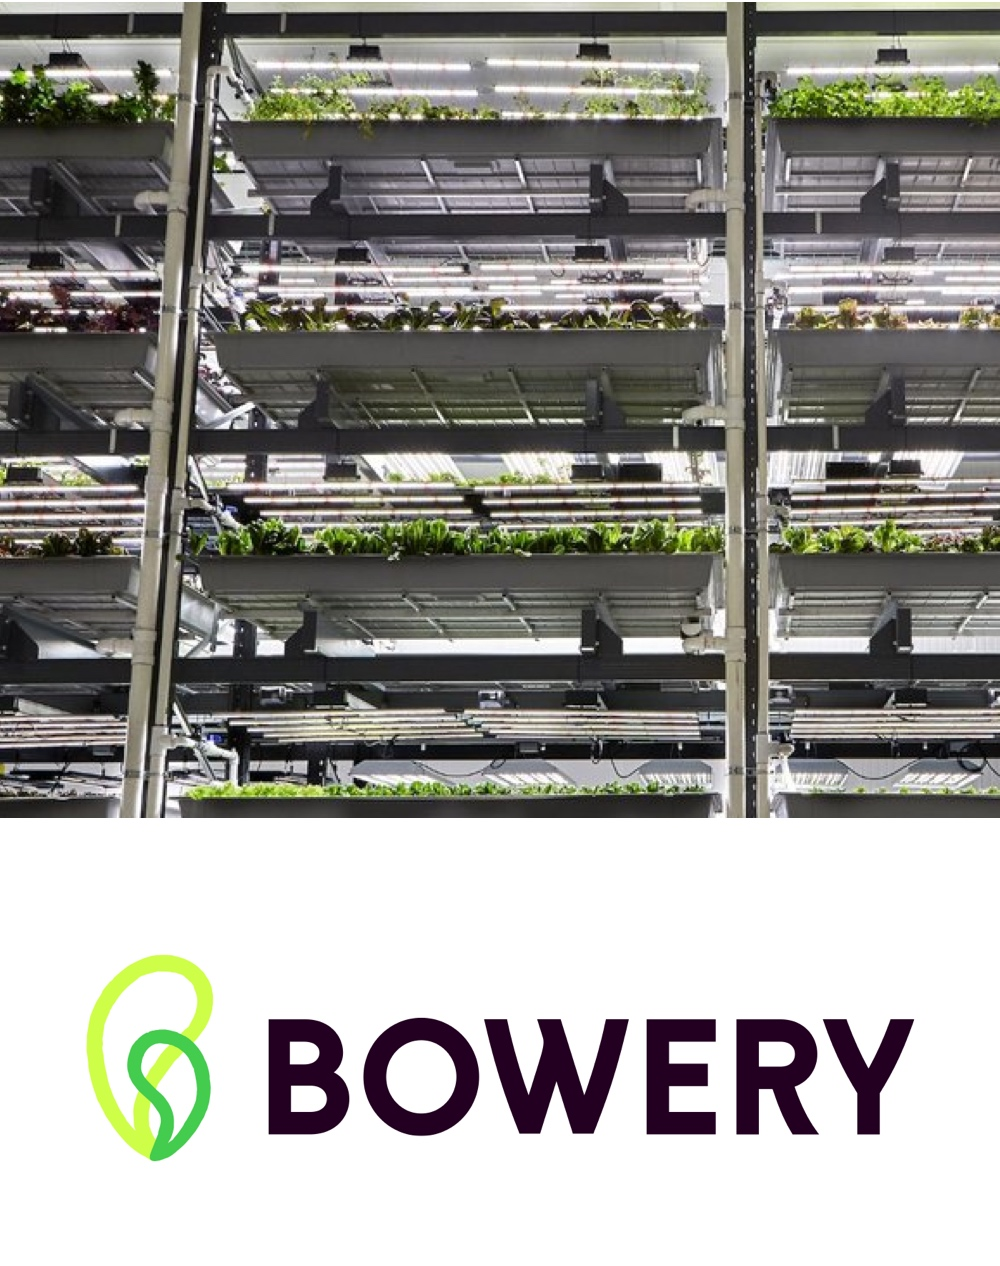 Bowery is the modern farming company growing the purest produce imaginable. We are on a mission to grow food for a better future by revolutionizing agriculture. -